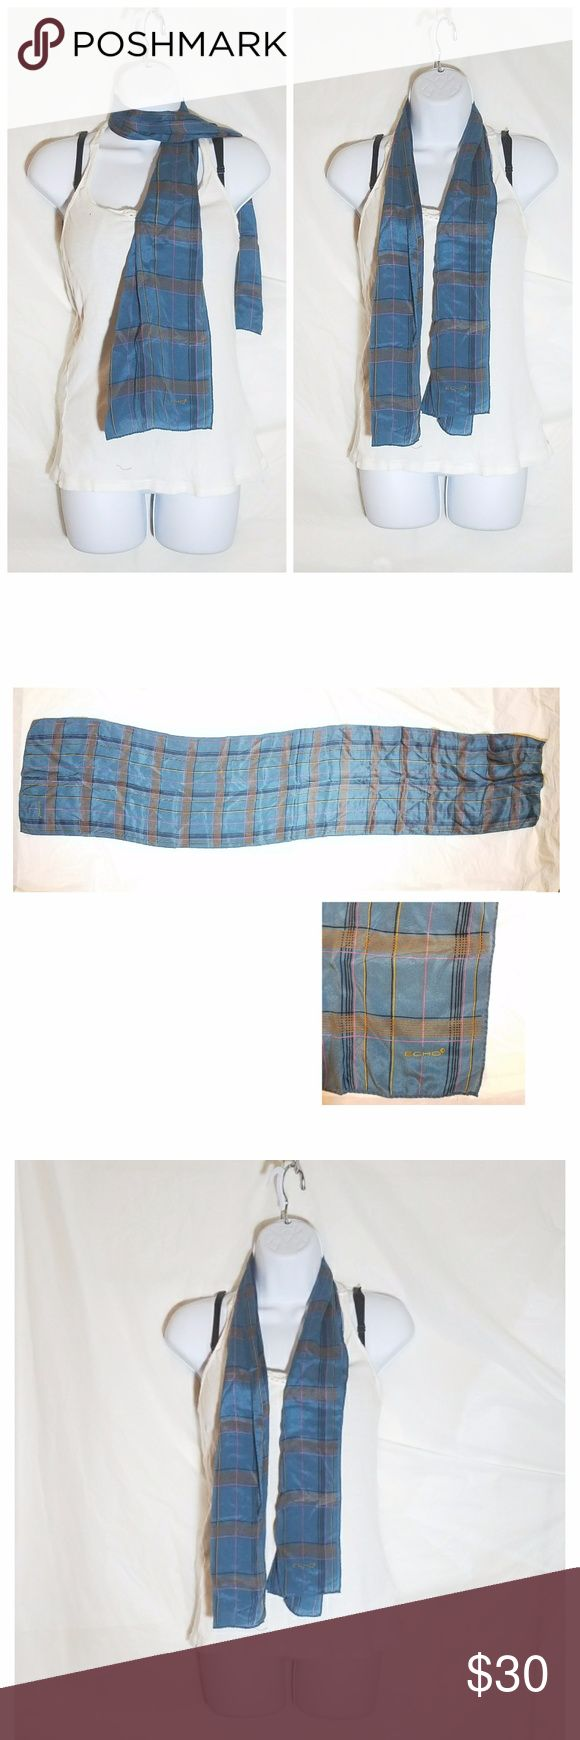 "Plaid Echo Scarf Size: 50"" long  Brand: Echo  Condition: Used  Flaws: None  silk scarf Echo Accessories Scarves & Wraps"